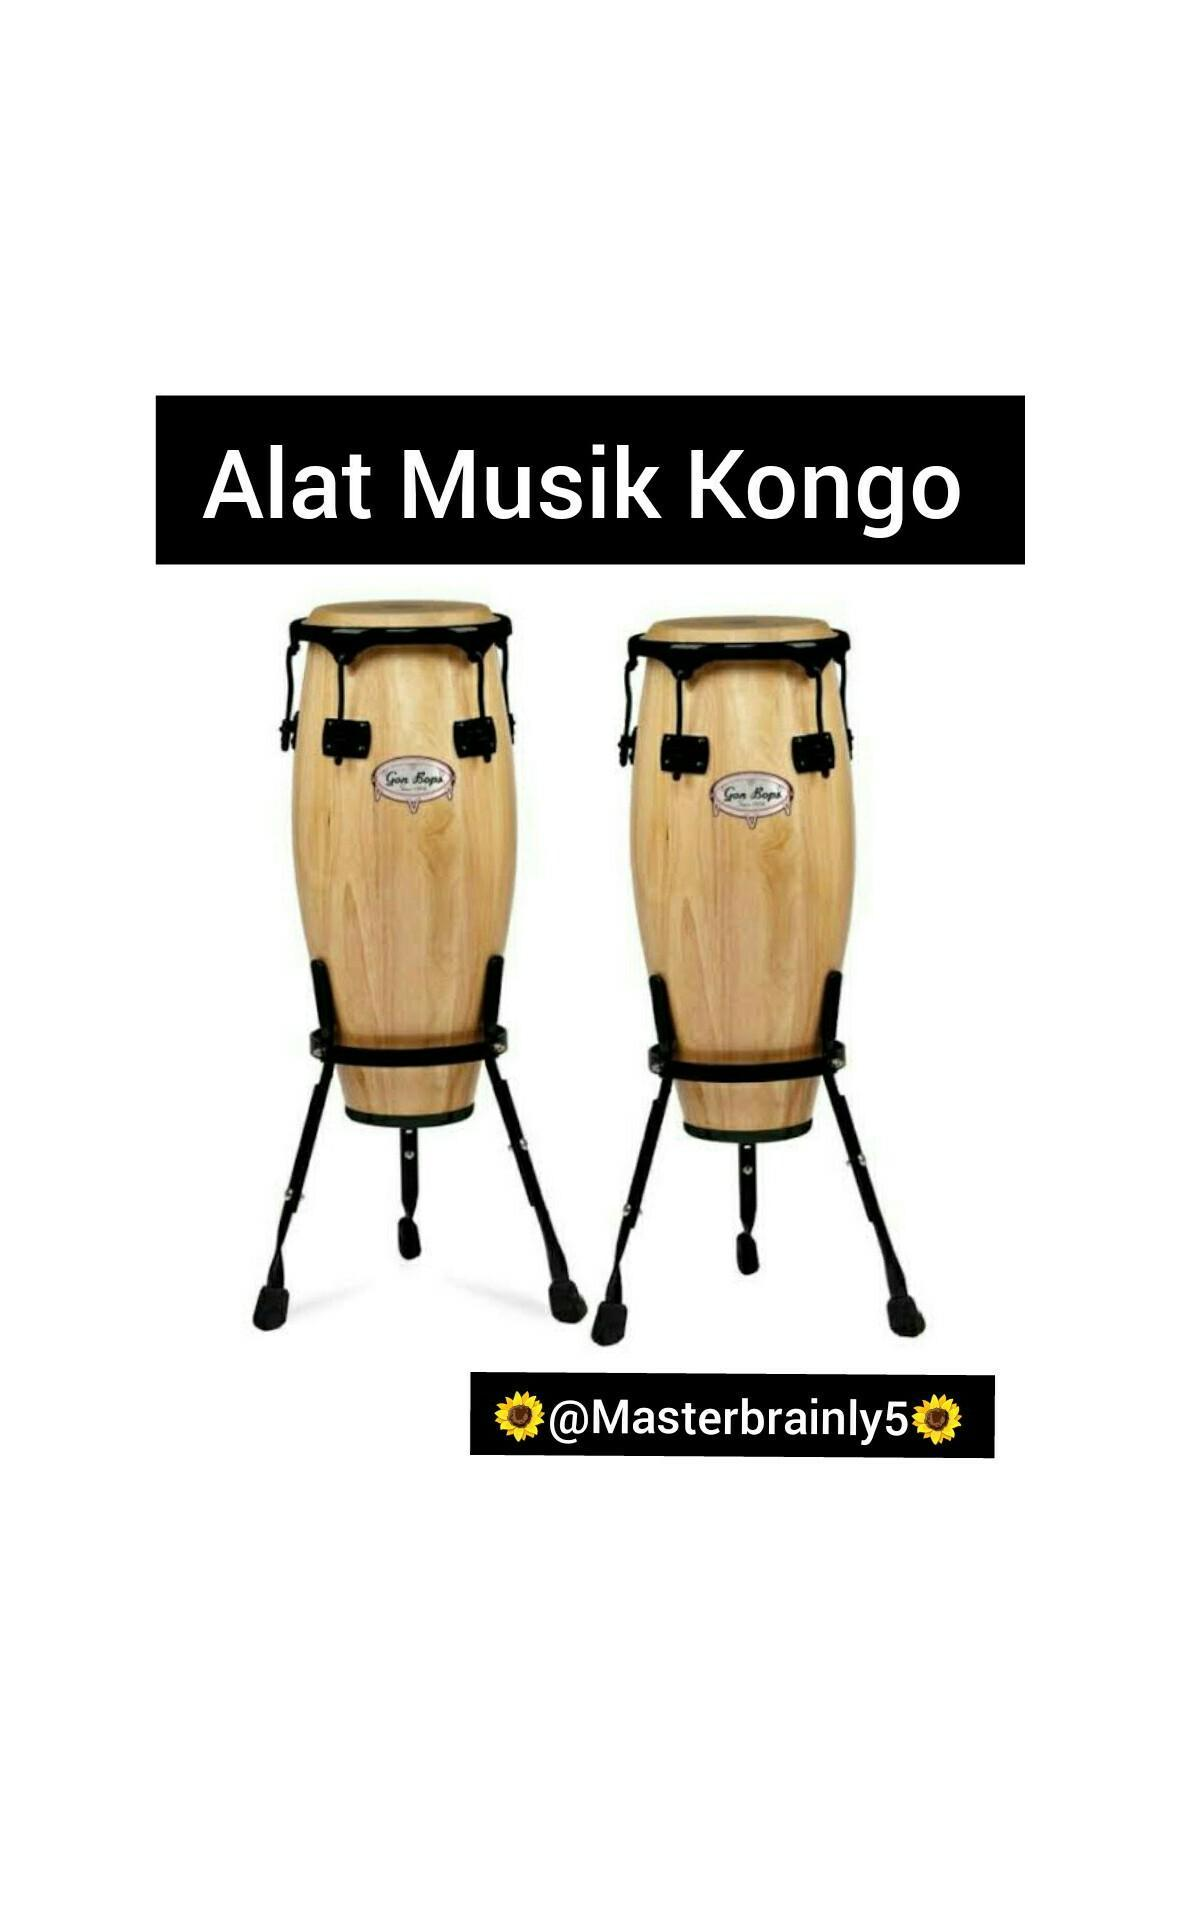 Alat Musik Kongo : musik, kongo, Gambar, Musik, Kongo, Brainly.co.id